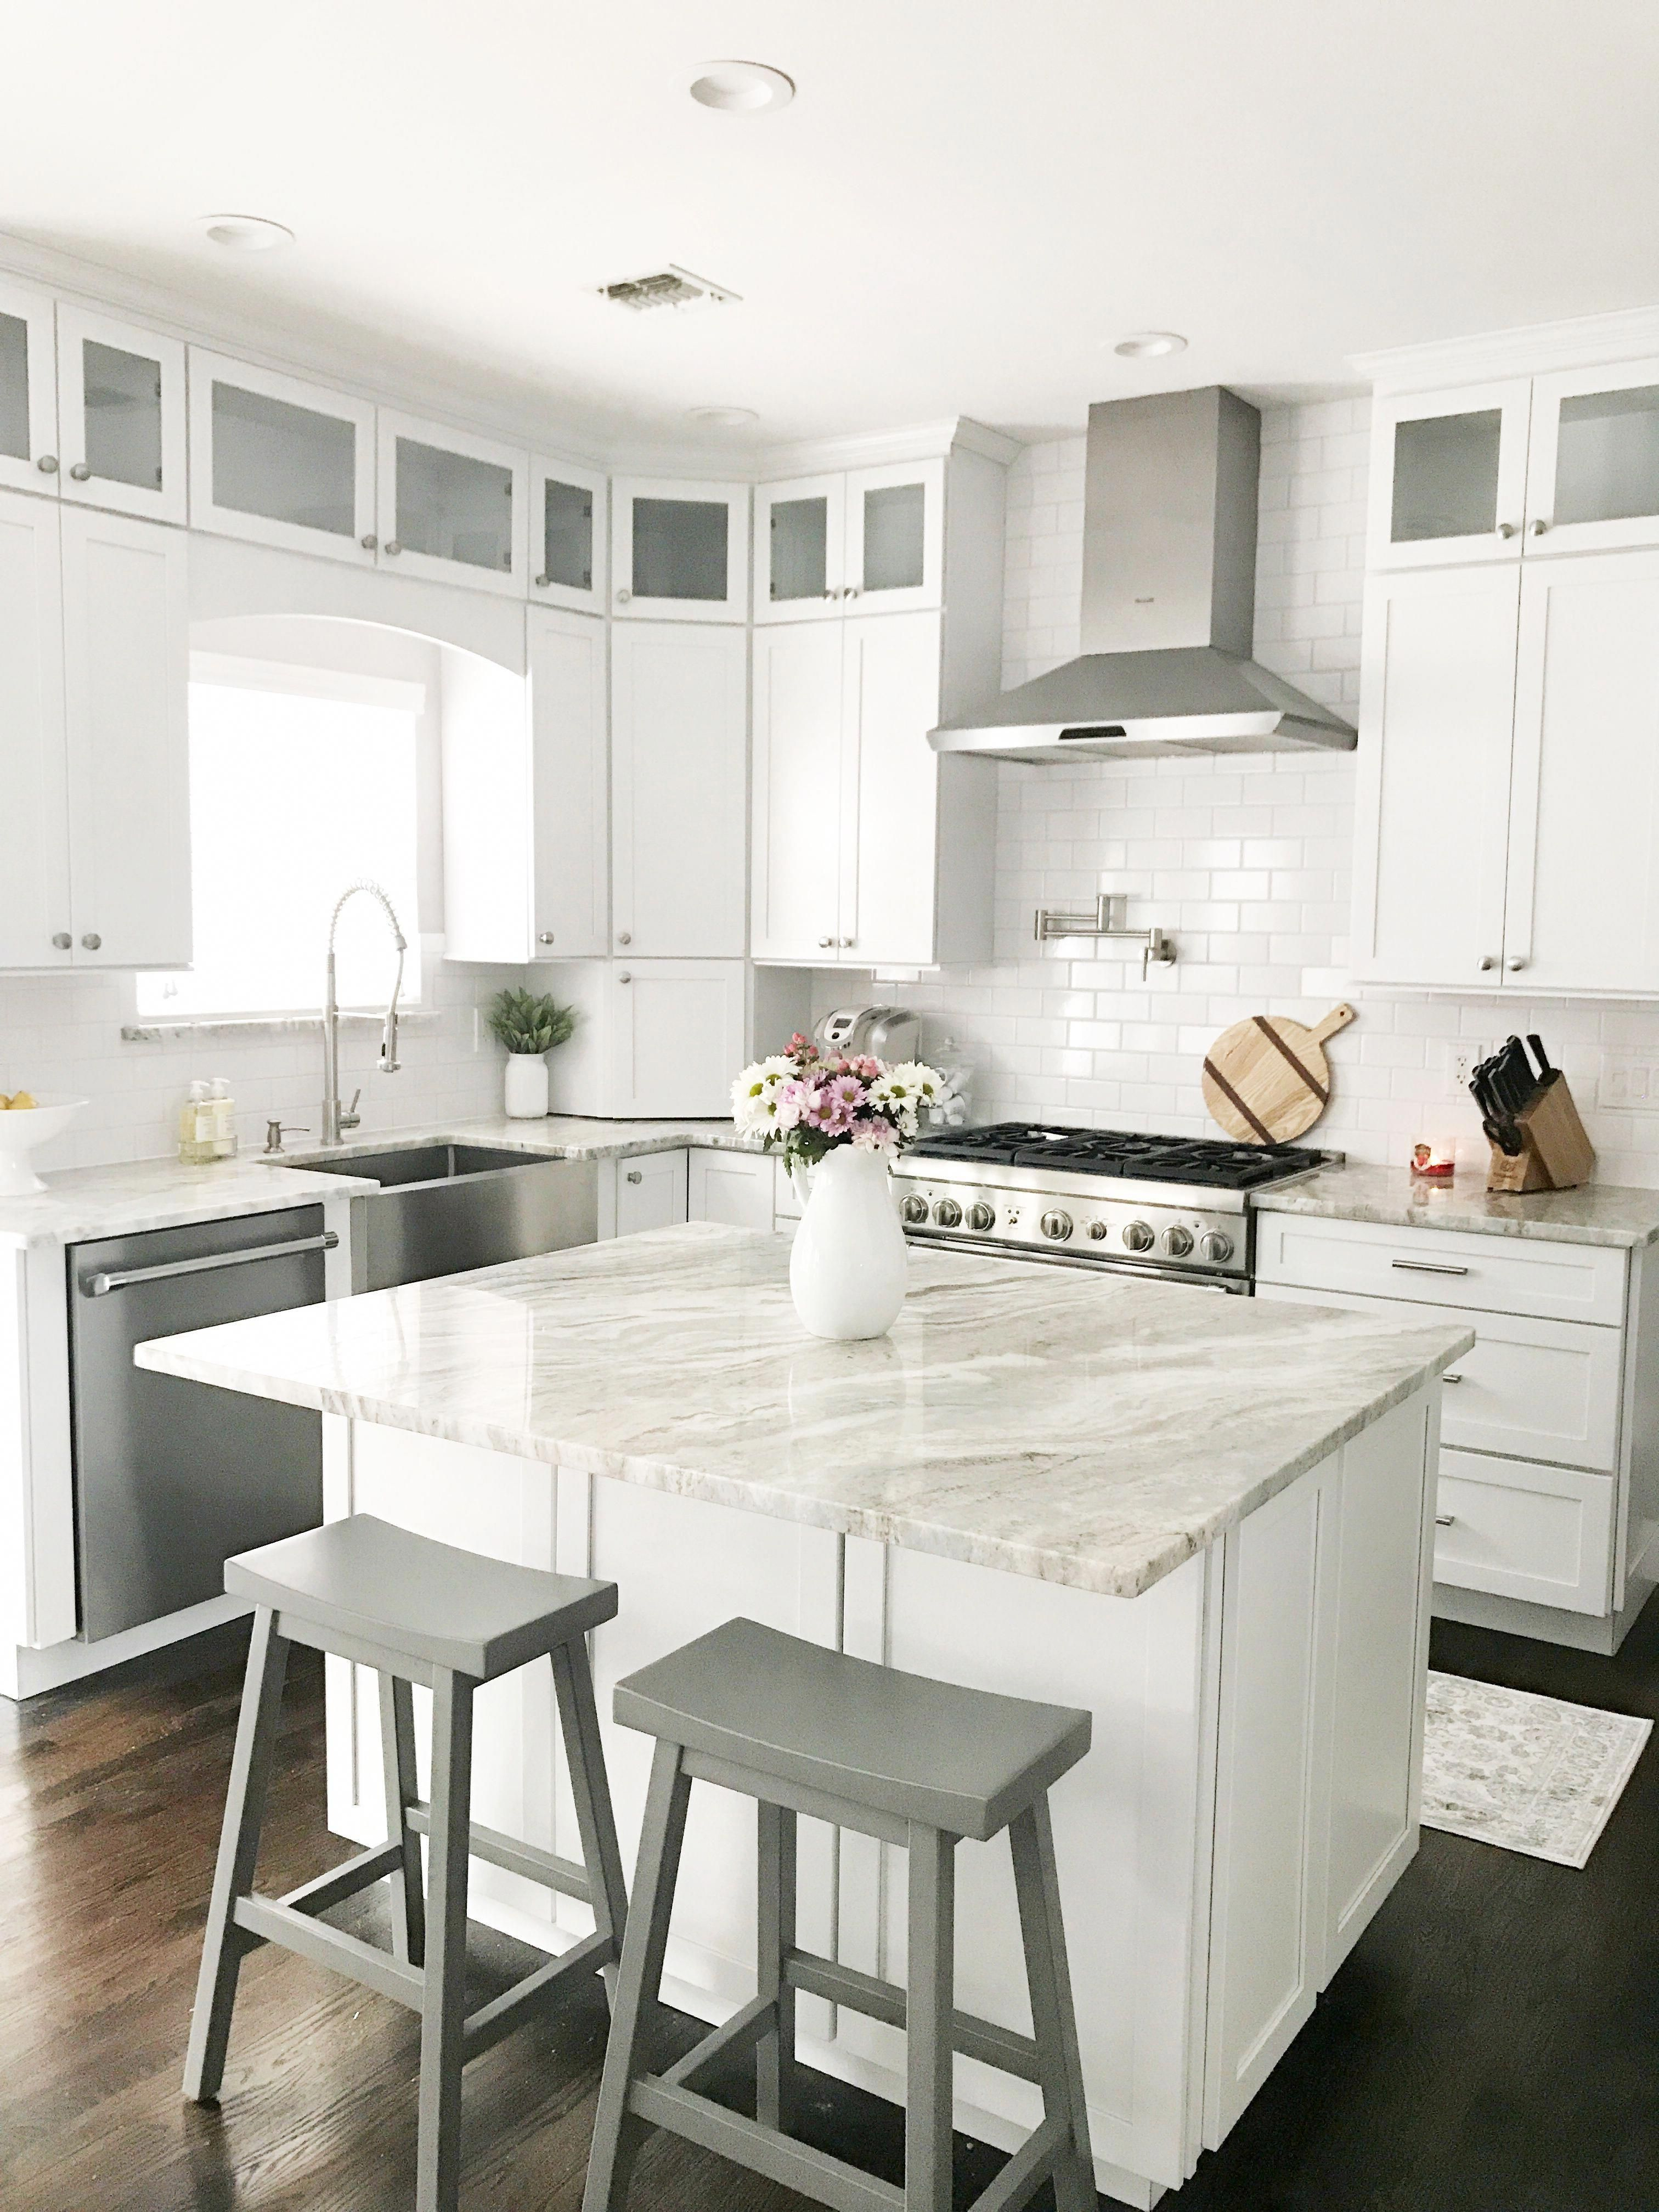 Looking for white shaker cabinet kitchen inspiration ...